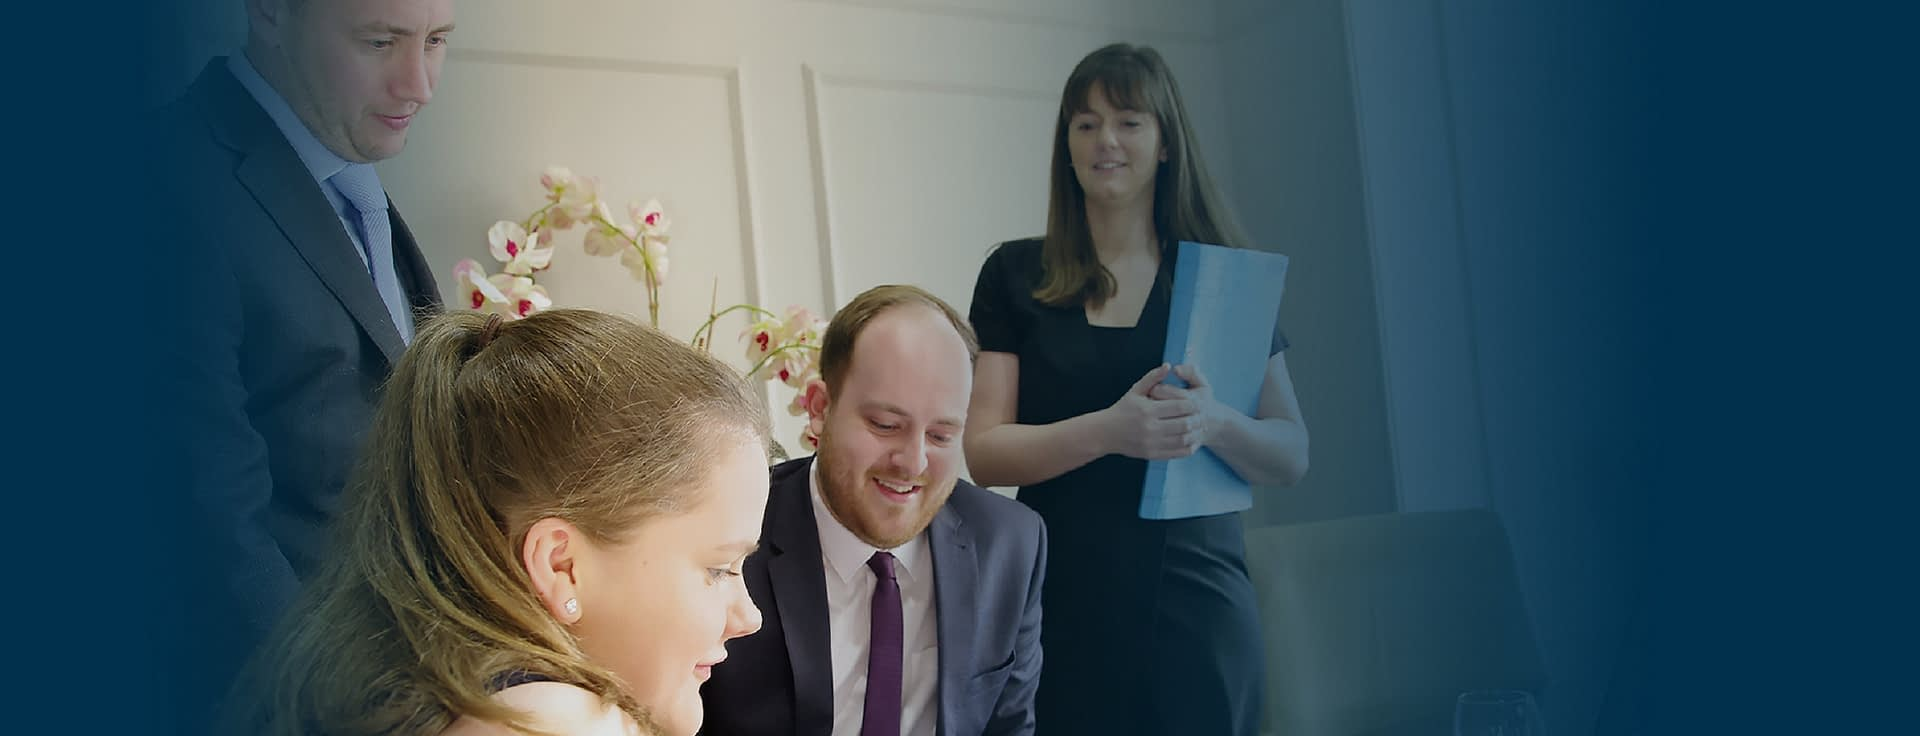 Work Experience and Apprenticeships at HB Accountants